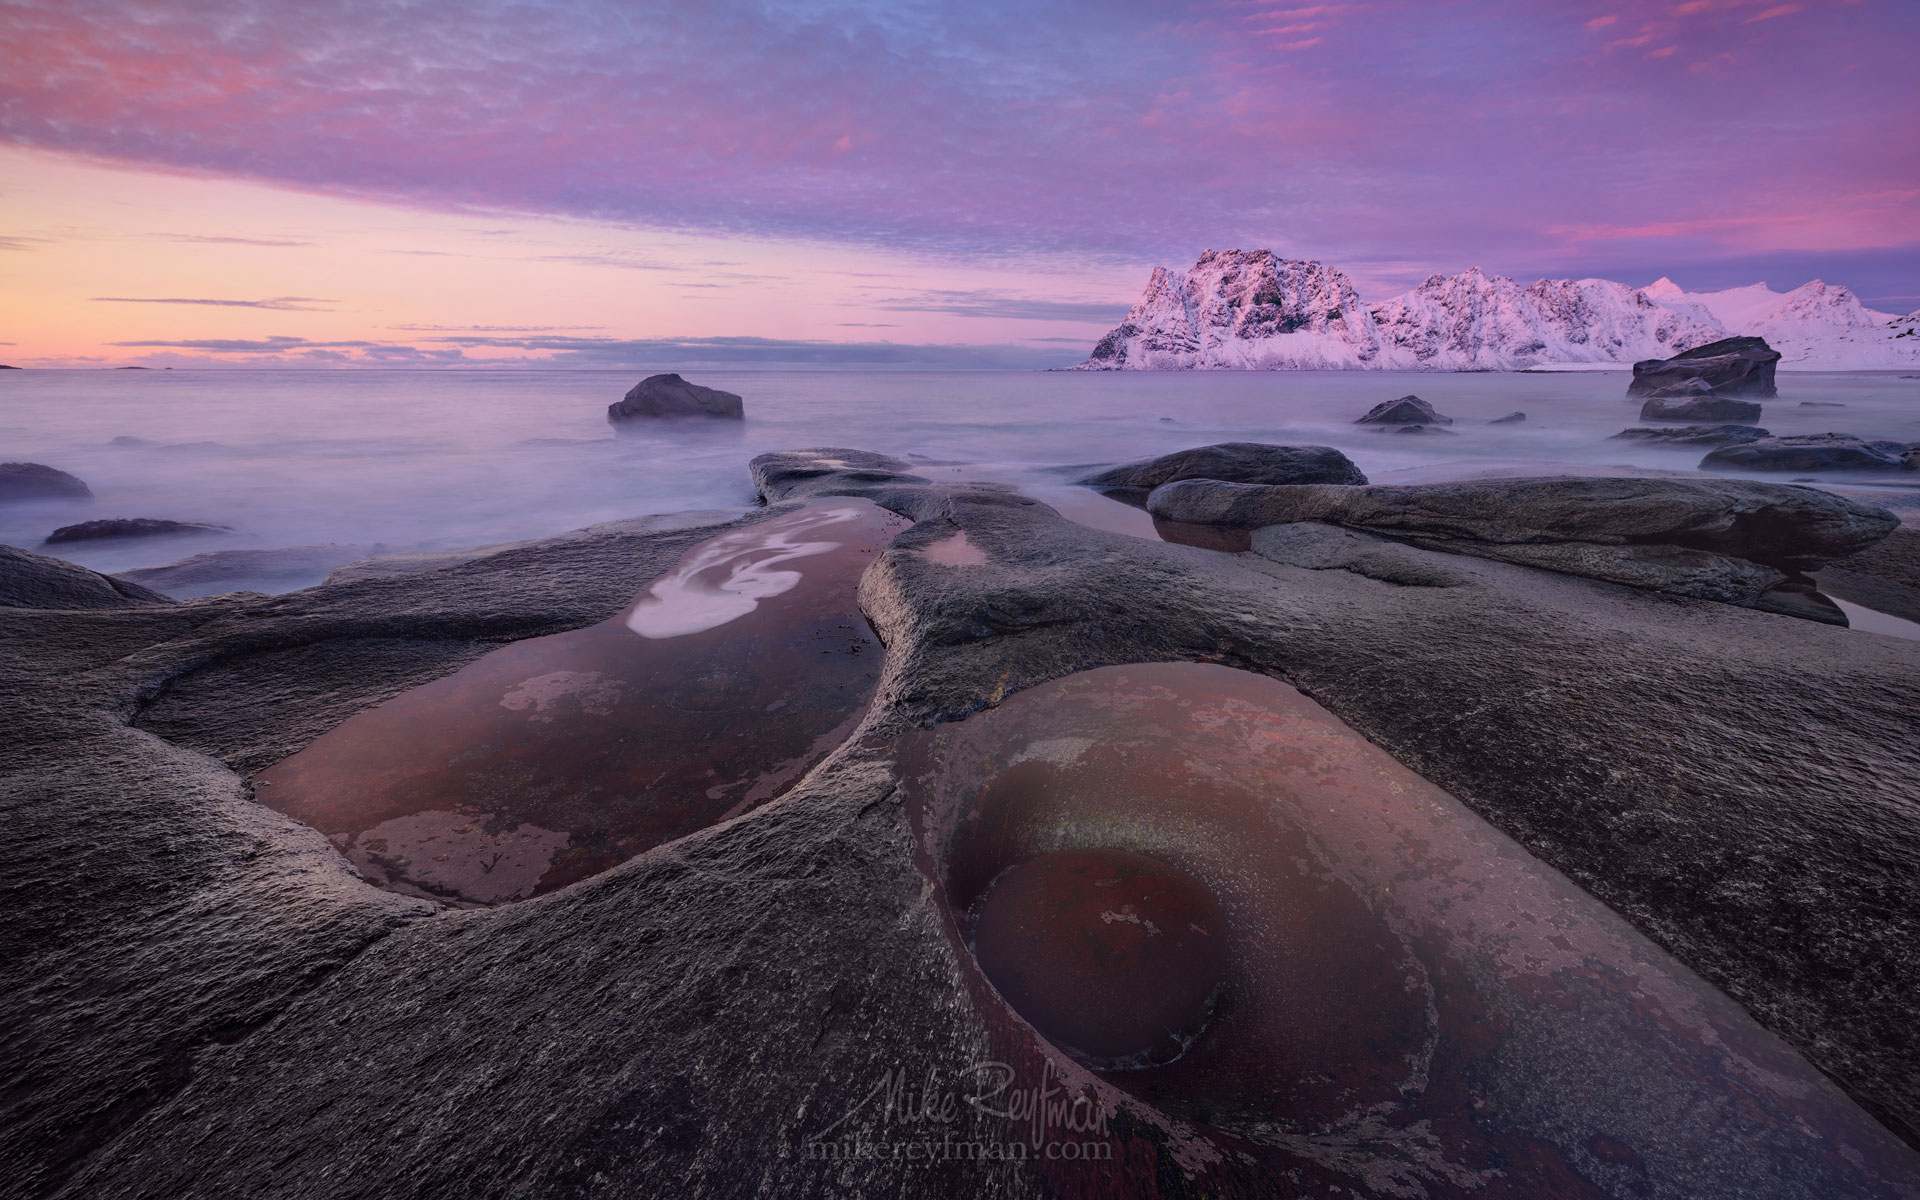 Arctic Avocado. Winter sunset at Uttakleiv Eye. Utakleiv beach, Vestvagoy, Lofoten Islands, Norway LF-MRD1E2398 - Lofoten Archipelago in Winter, Arctic Norway - Mike Reyfman Photography